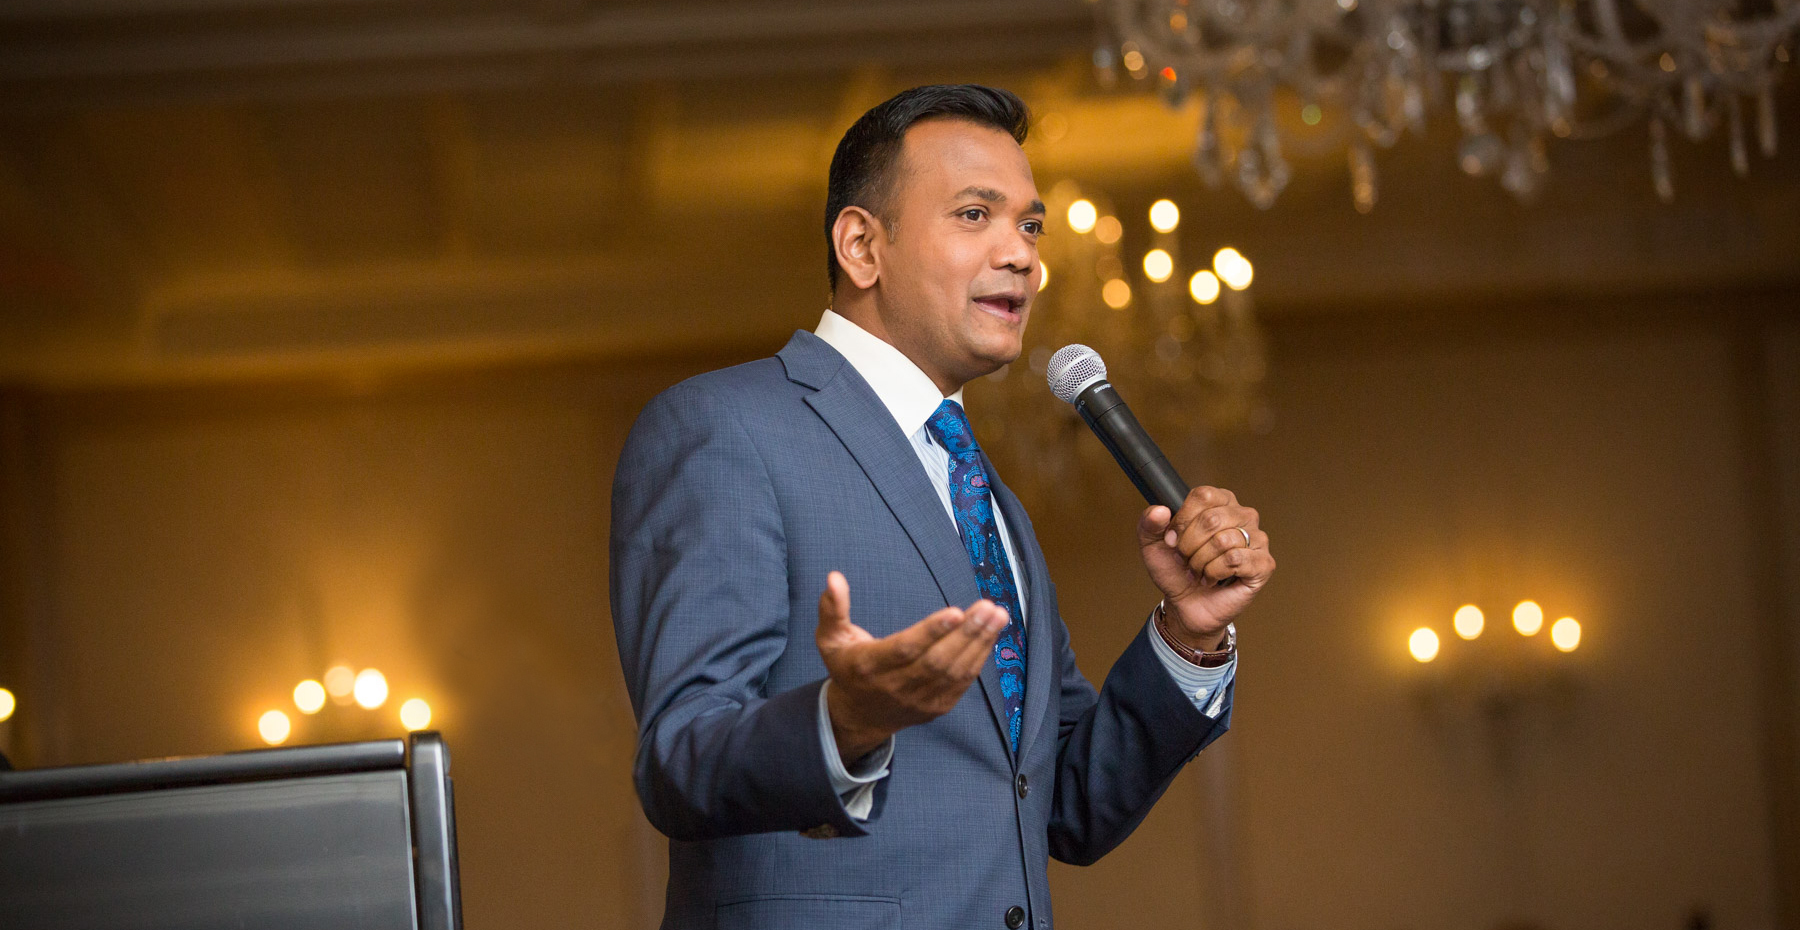 Roop Raj from Fox 2 Detroit hosts the FAR charity event at The Townsend Hotel